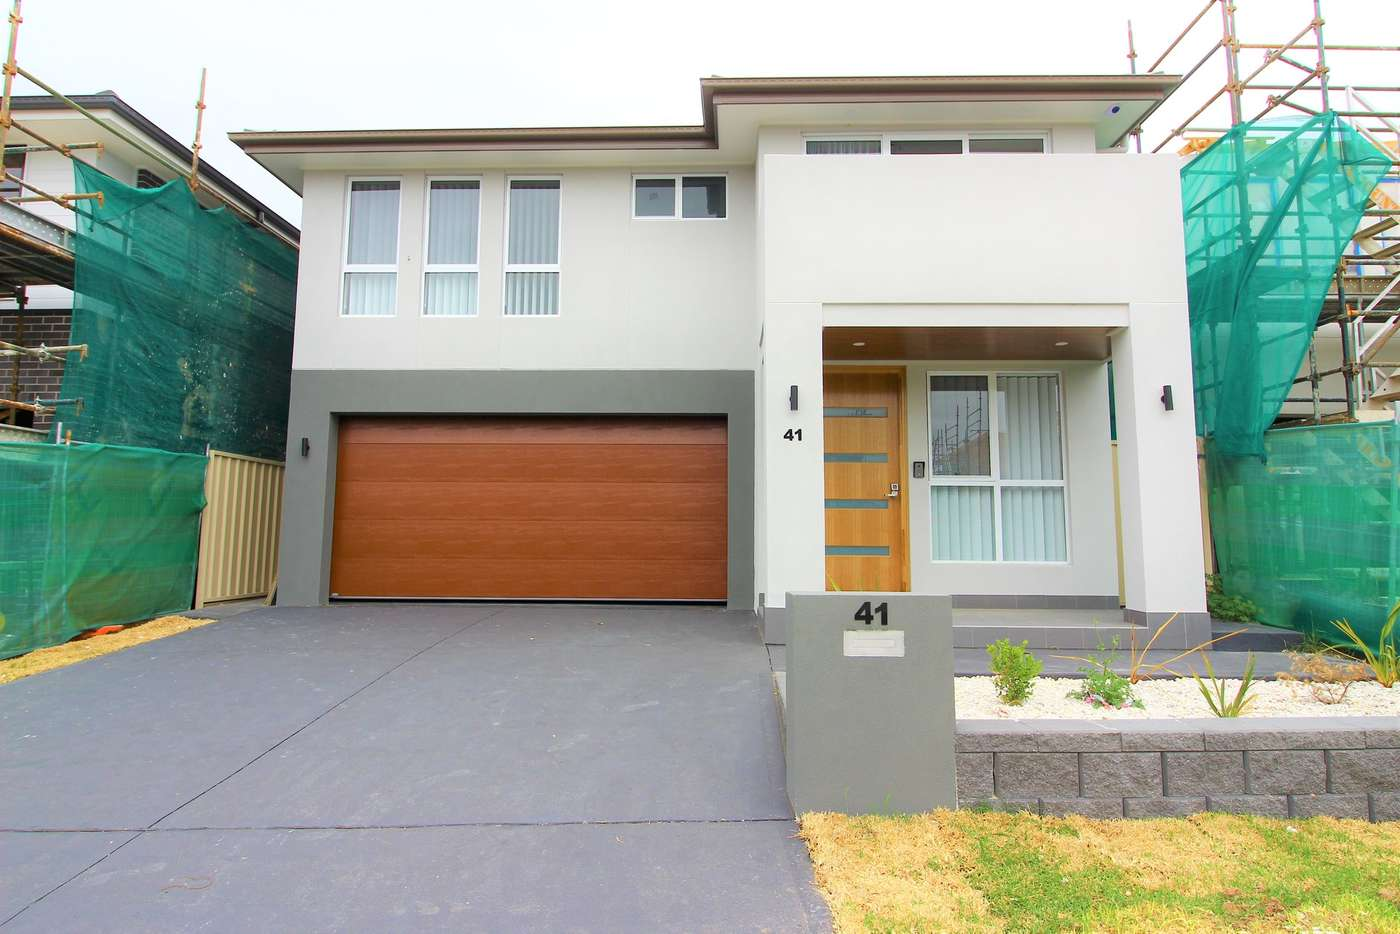 Main view of Homely house listing, 41 Mountain Street, The Ponds NSW 2769